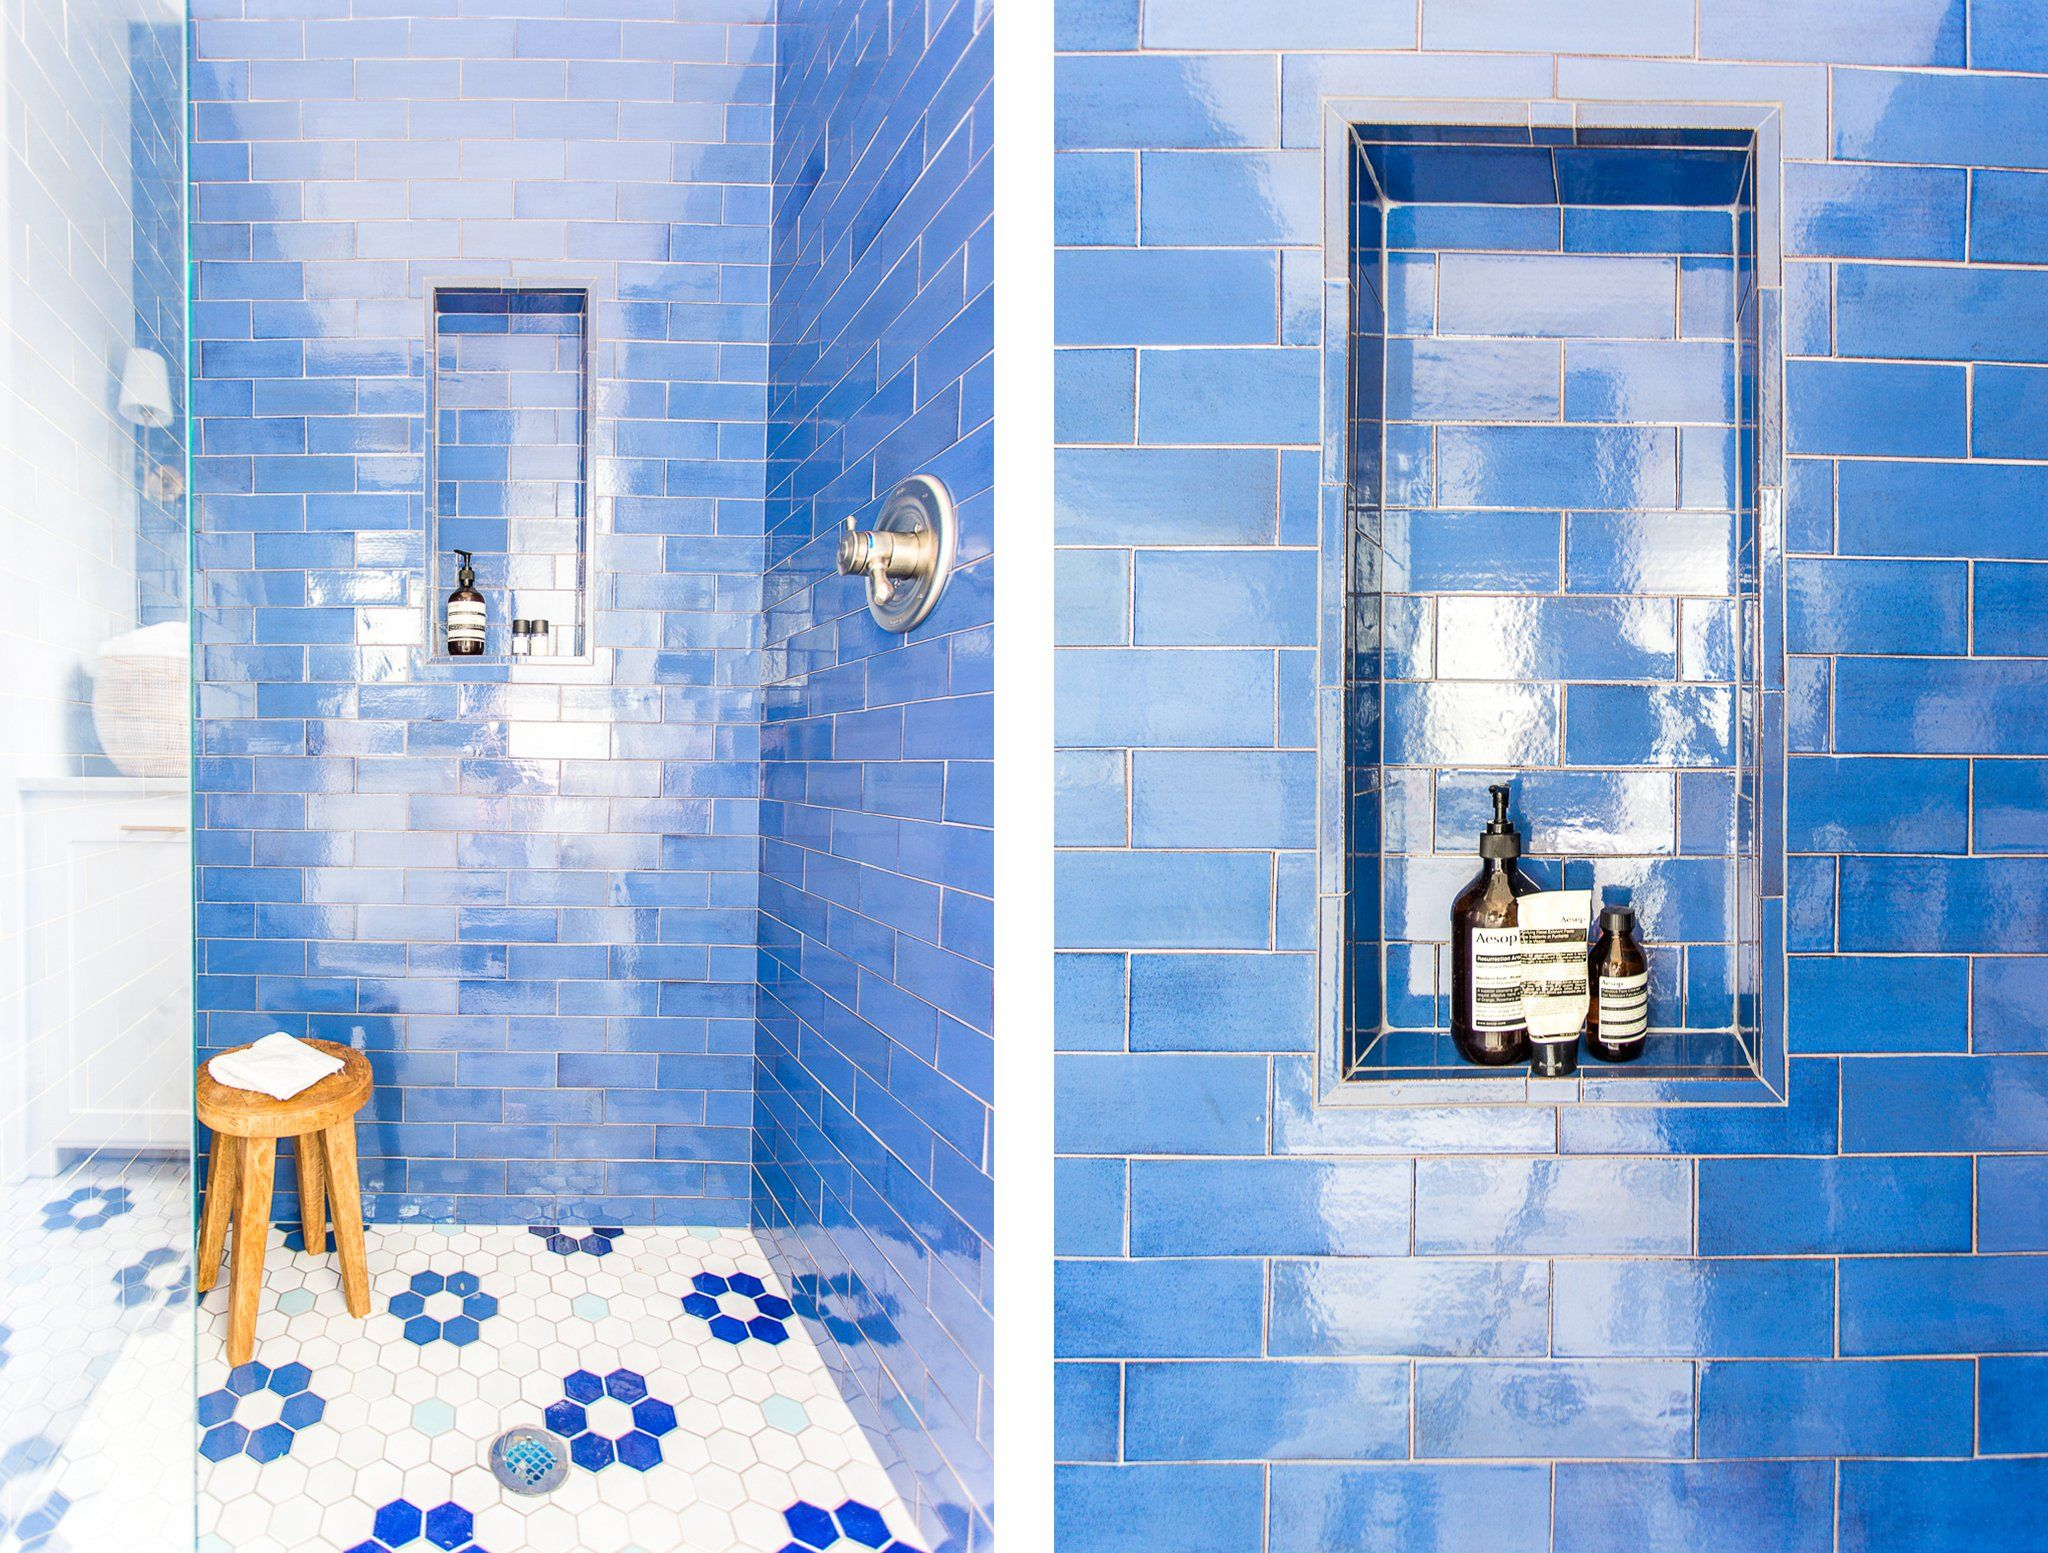 Stunning Sapphire Blue Tile Design For A Small Bathroom Tile Bathroom Blue Bathroom Tile Small Bathroom Tiles